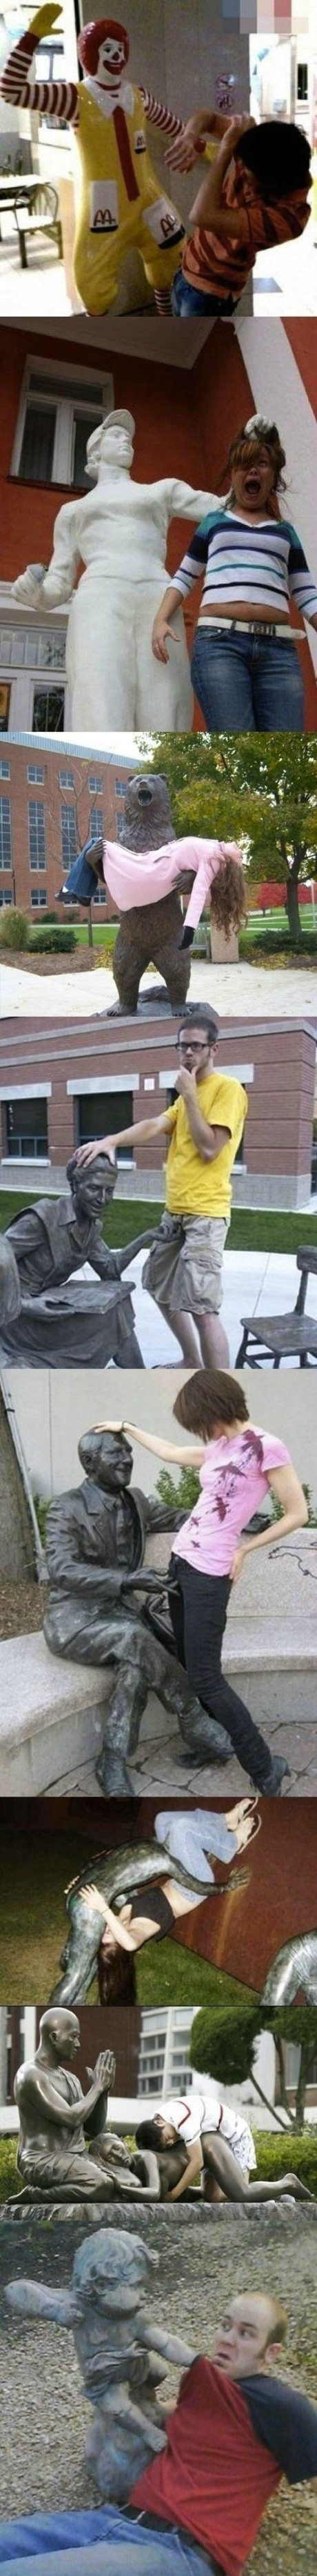 One of my favorite things to do - fun photos with statues!! Love these!